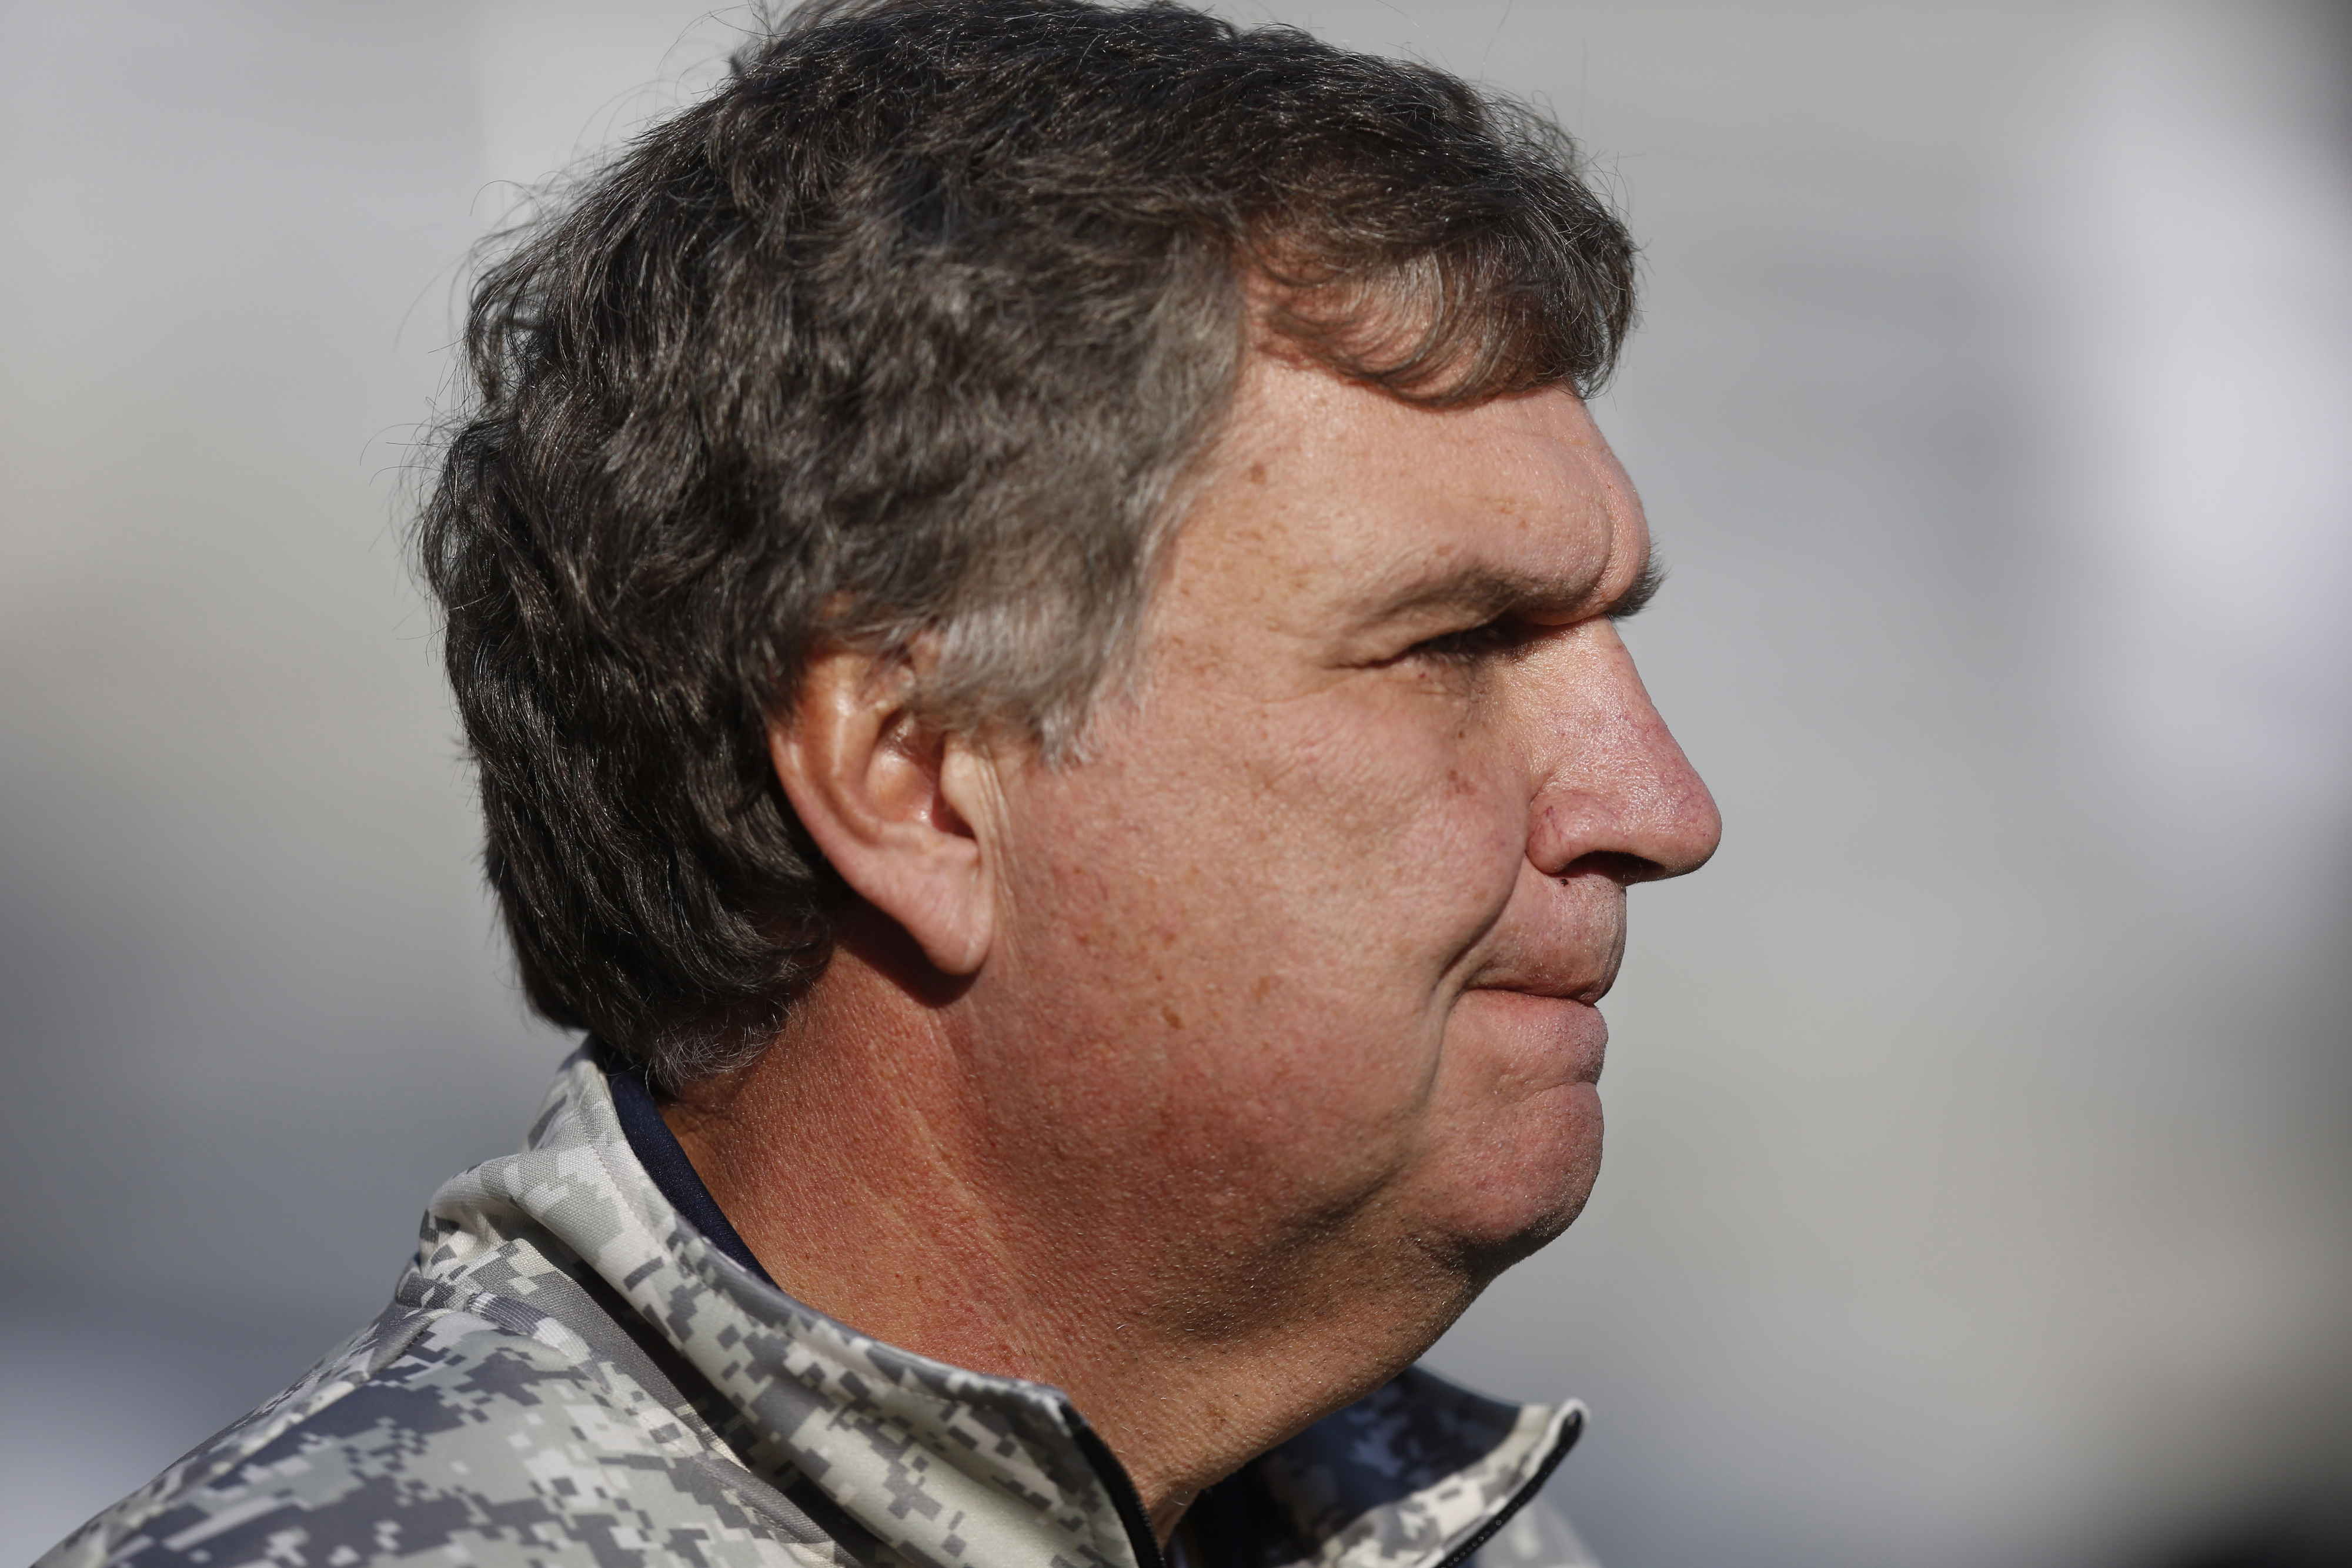 Paul Johnson thinks your polls are a bunch of crap.